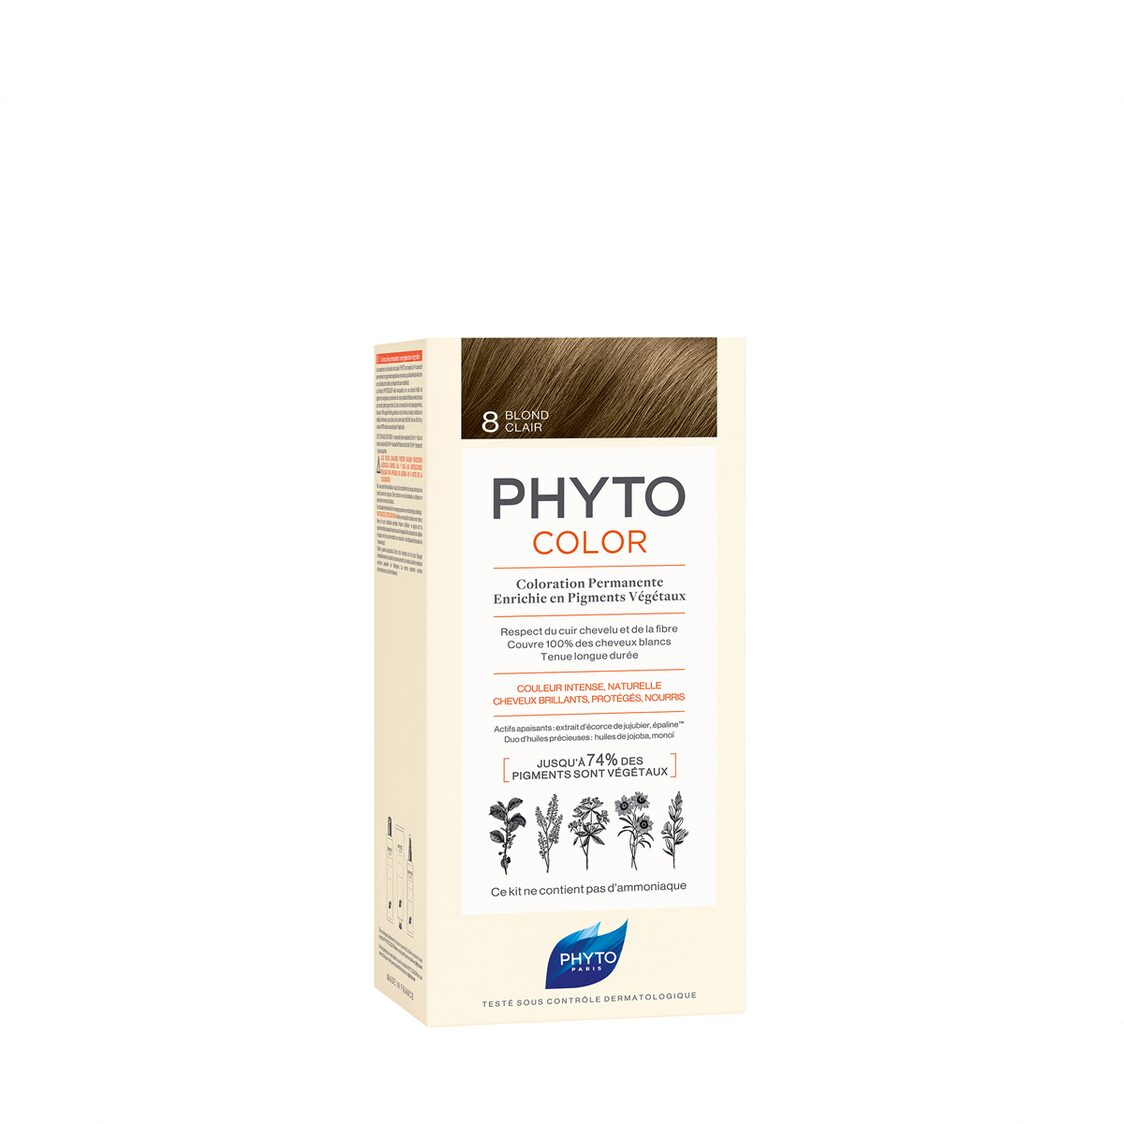 Phytocolor 8 Light Blond Col Cr 50ml  Lot 50ml PH10013A99926